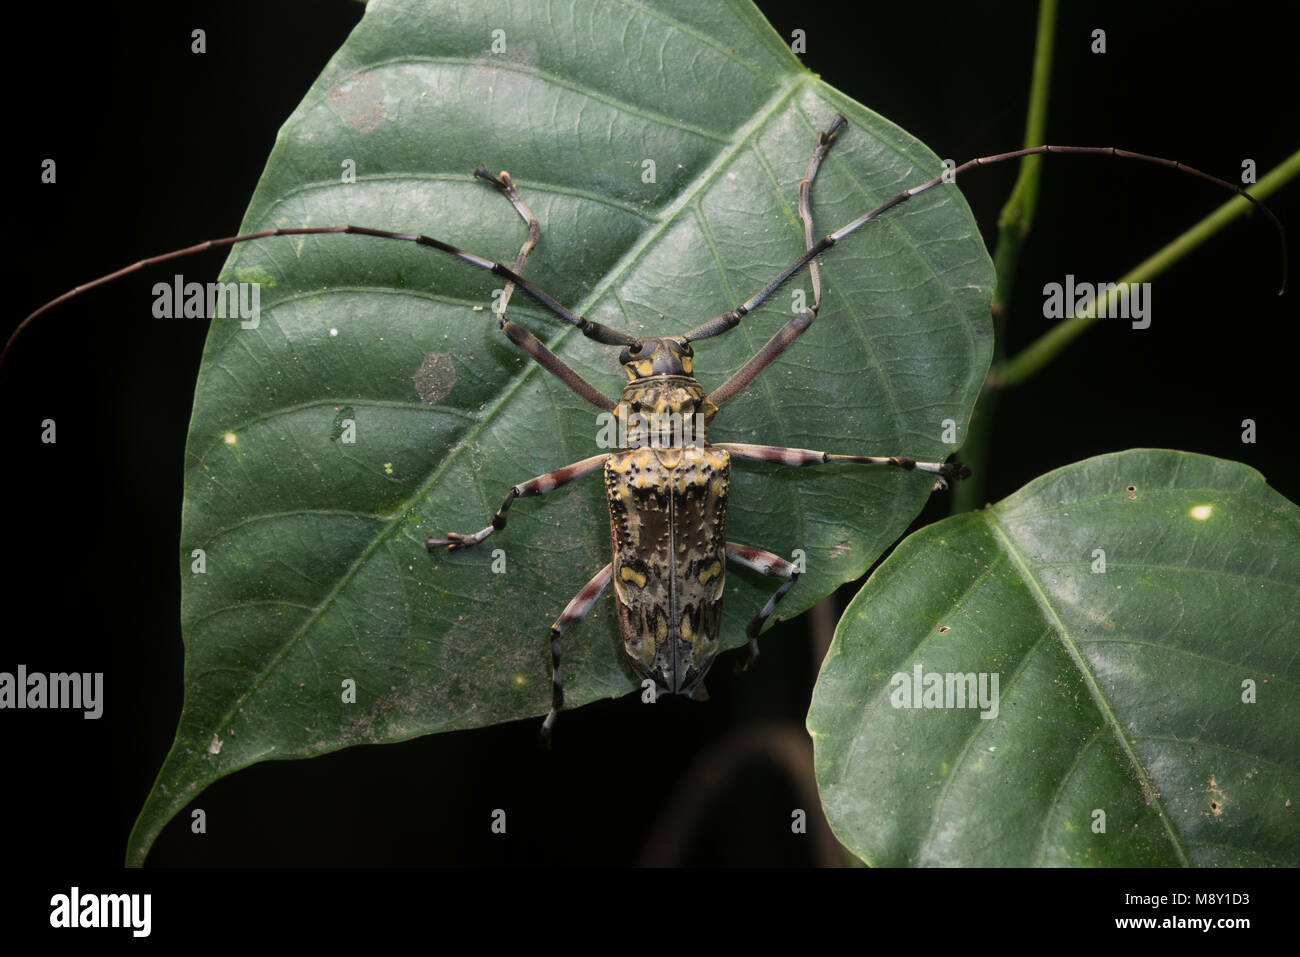 A long horn beetle from Peru. - Stock Image